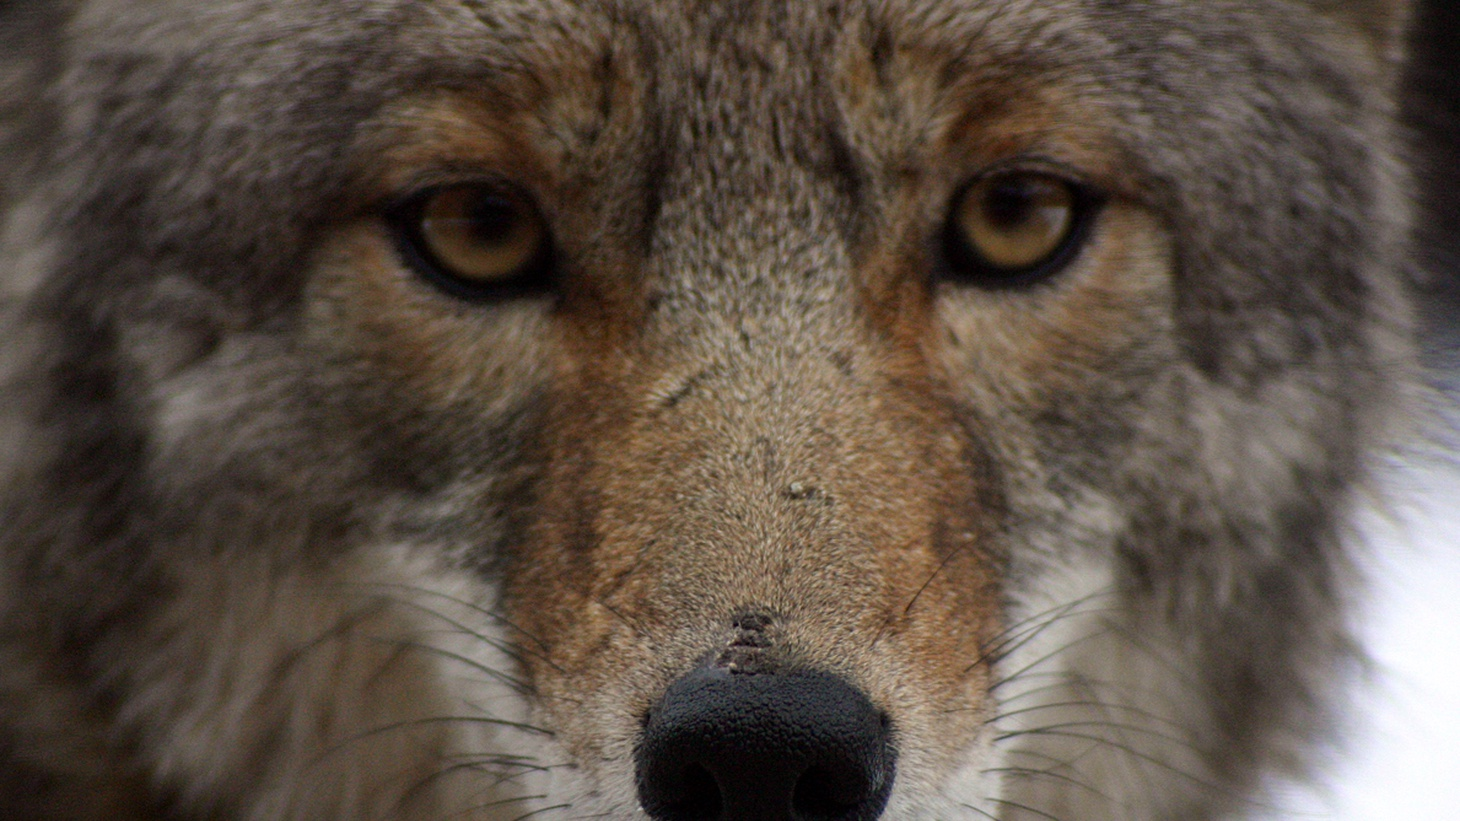 Seal Beach residents plan to kill coyotes in town after a spate of pet attacks. We discuss whether that's the best option. And we look at the latest scary numbers regarding California's dwindling water supply.